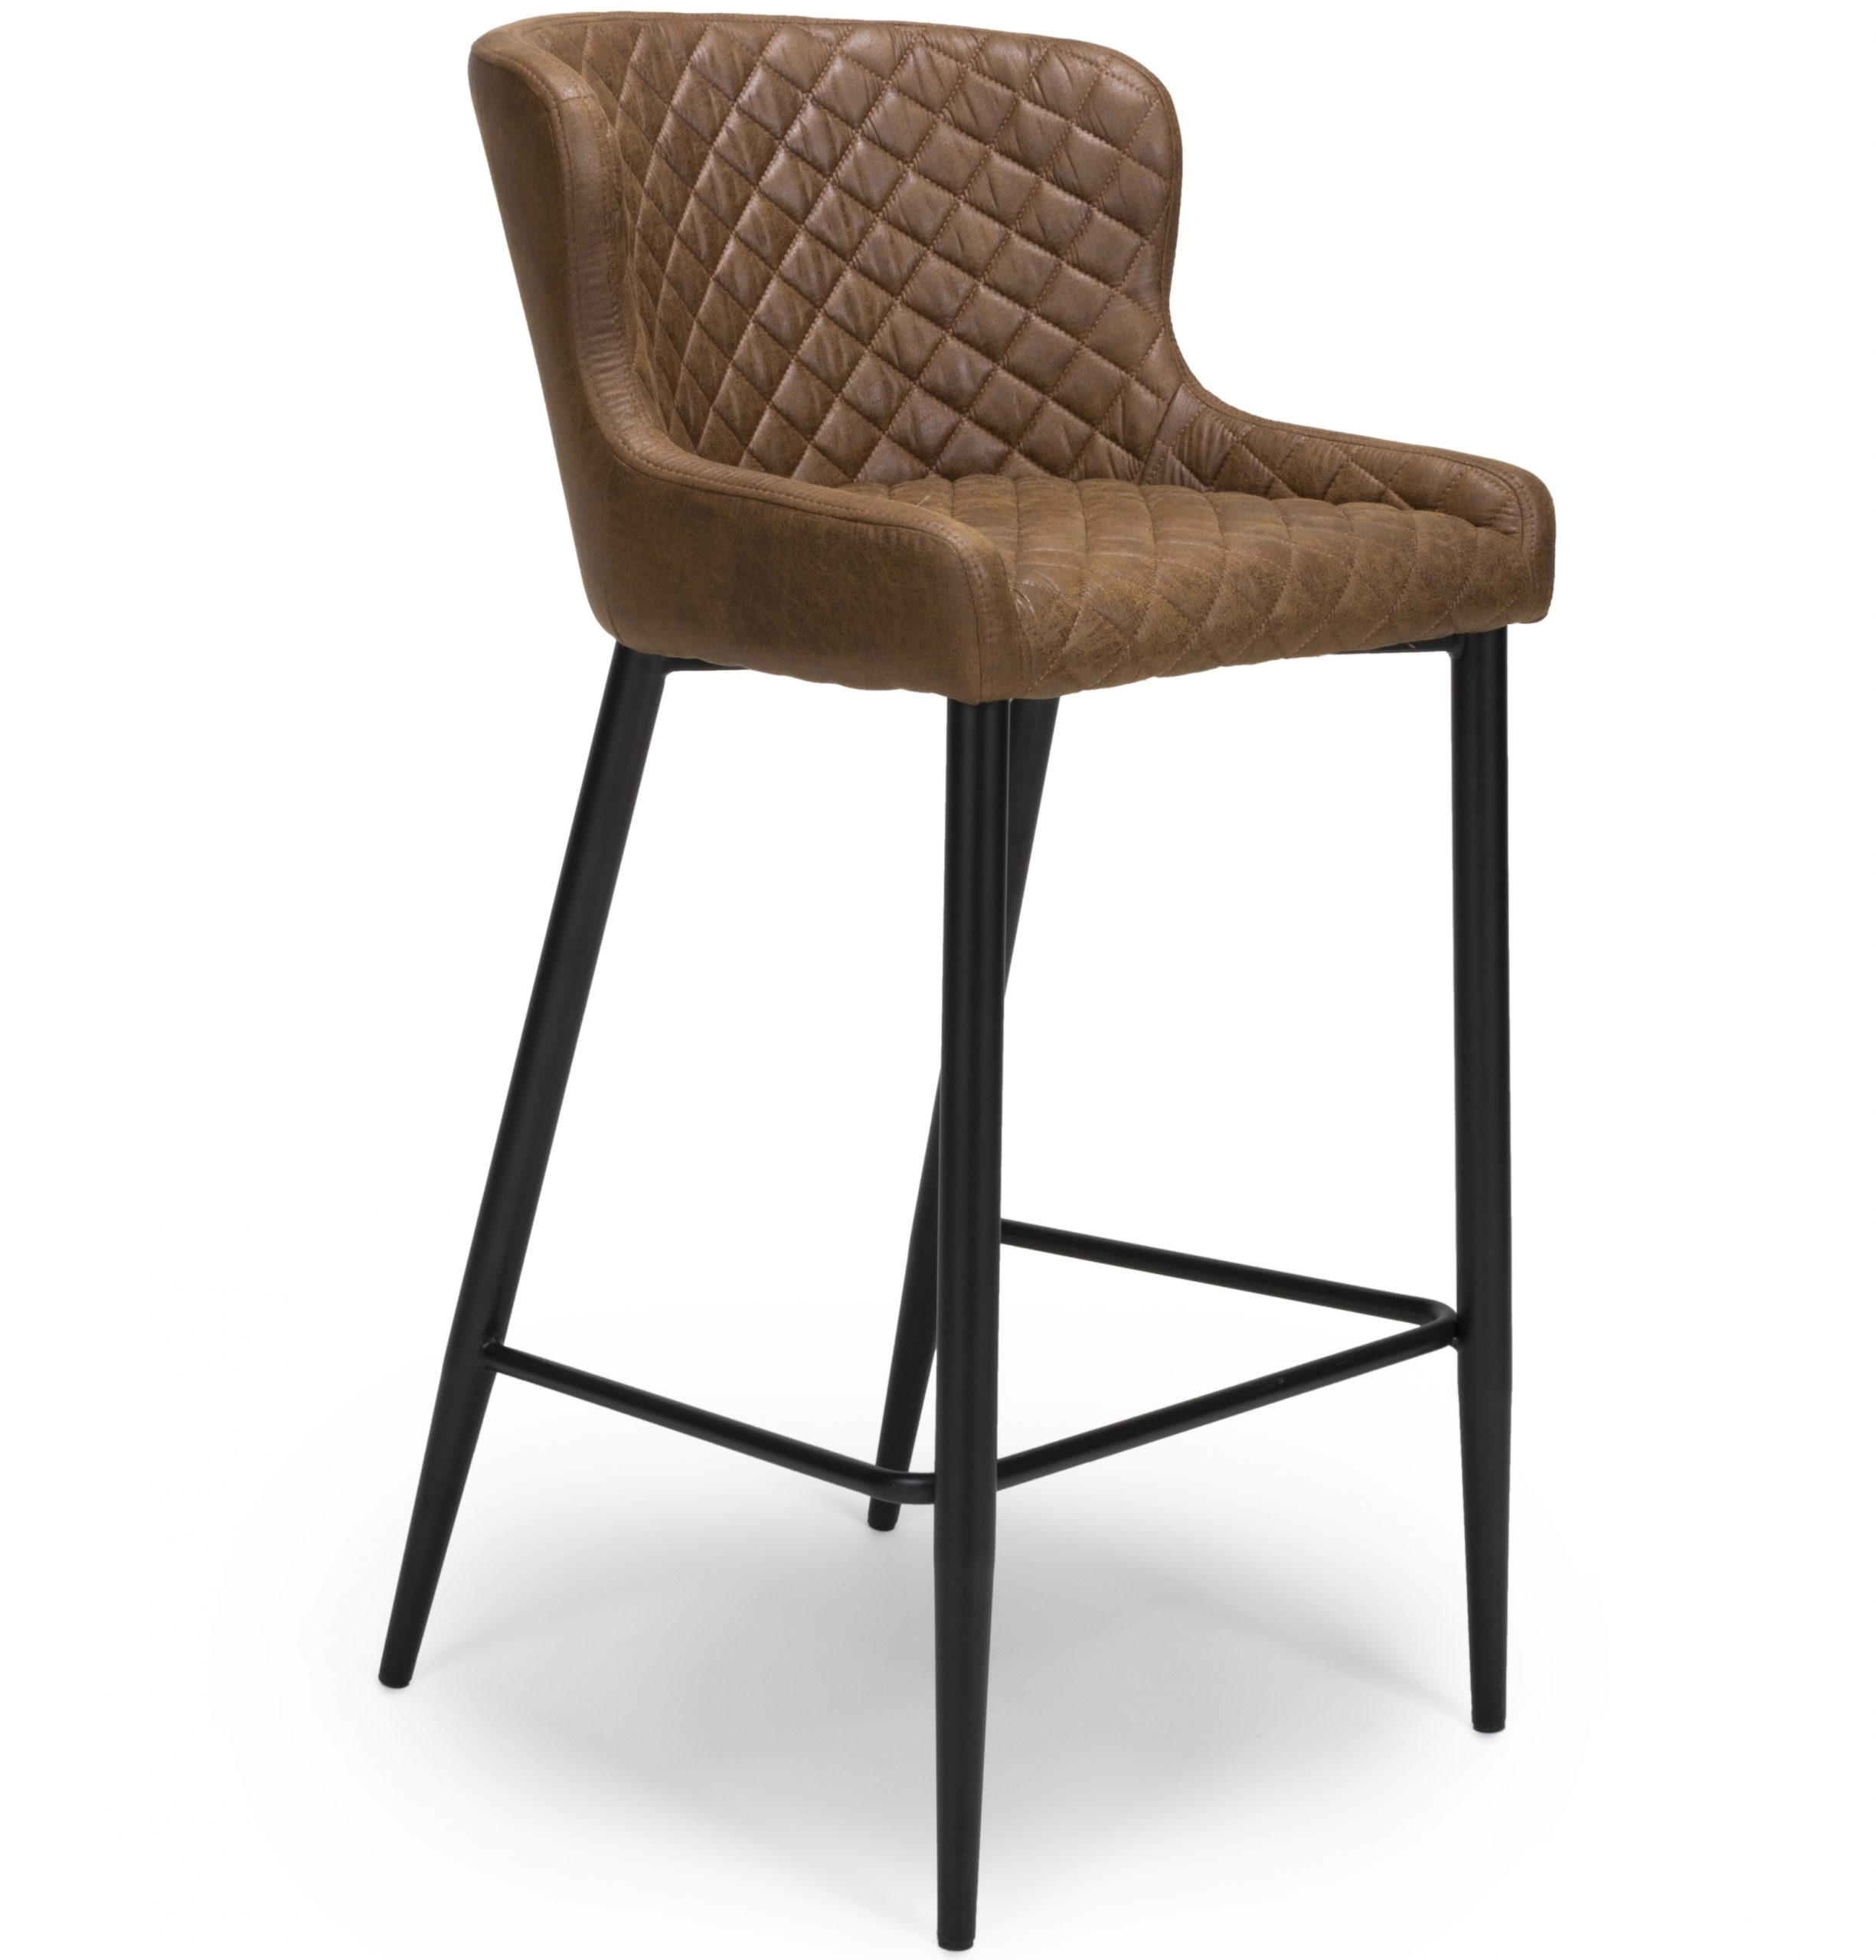 Harley vintage brown leather bar stool